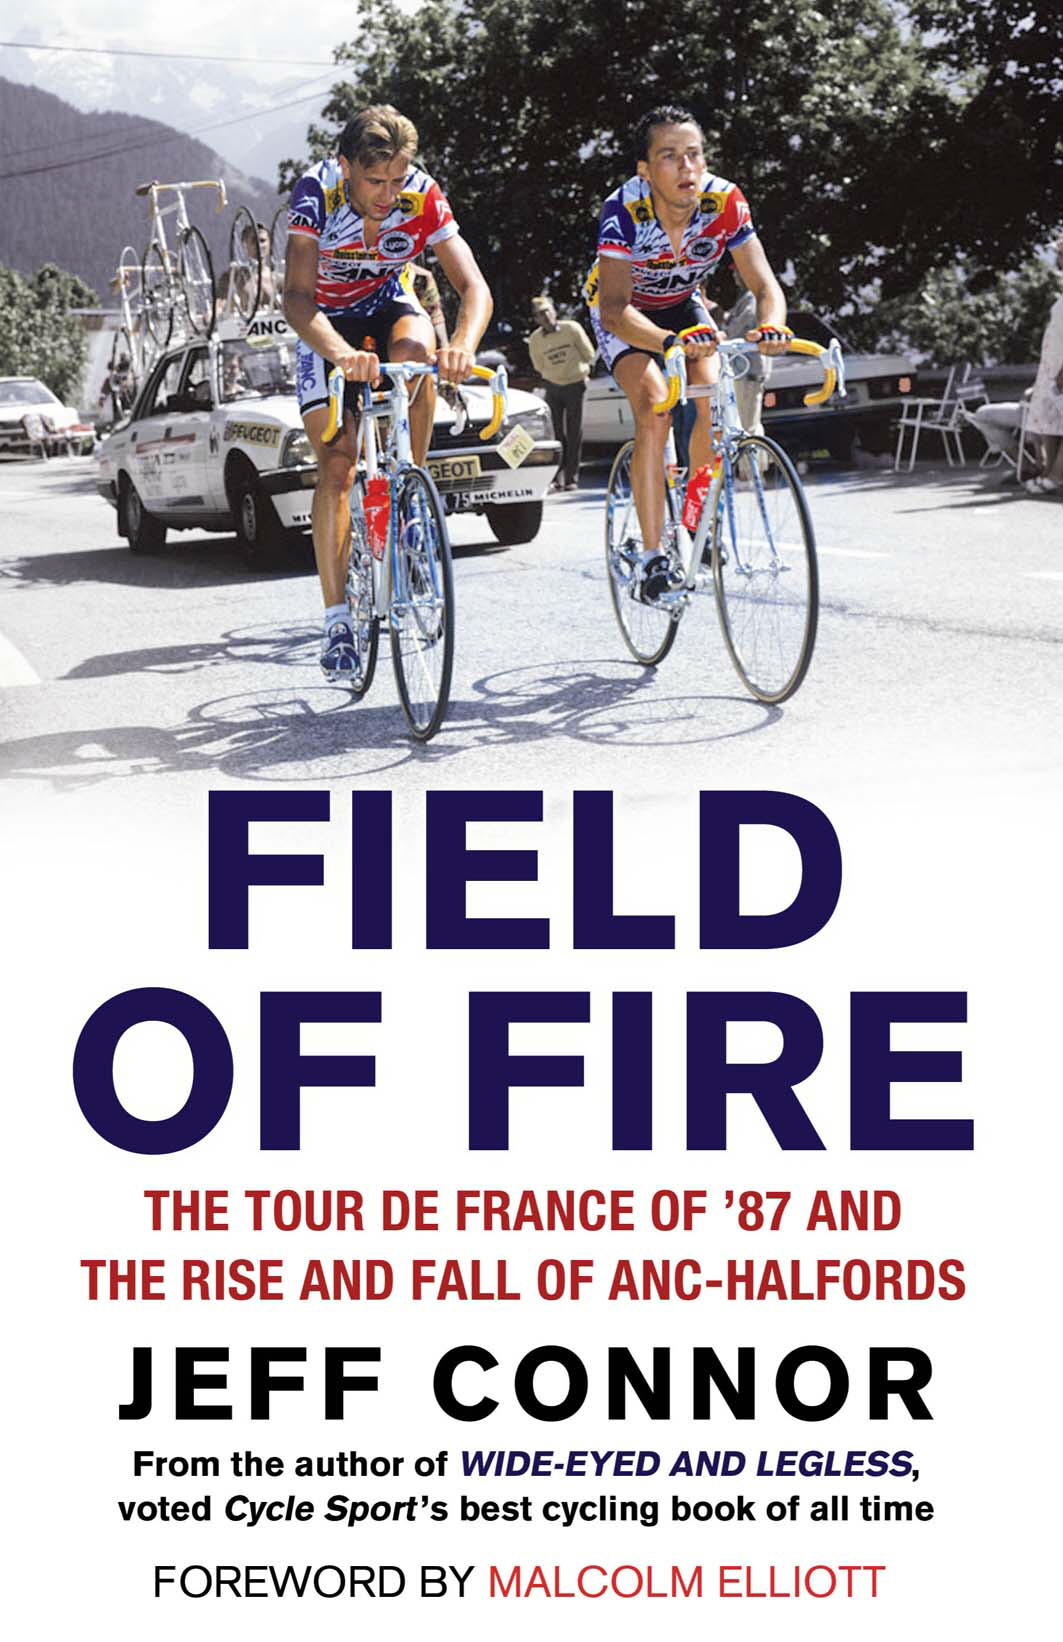 Field of Fire The Tour de France of '87 and the Rise and Fall of ANC-Halfords